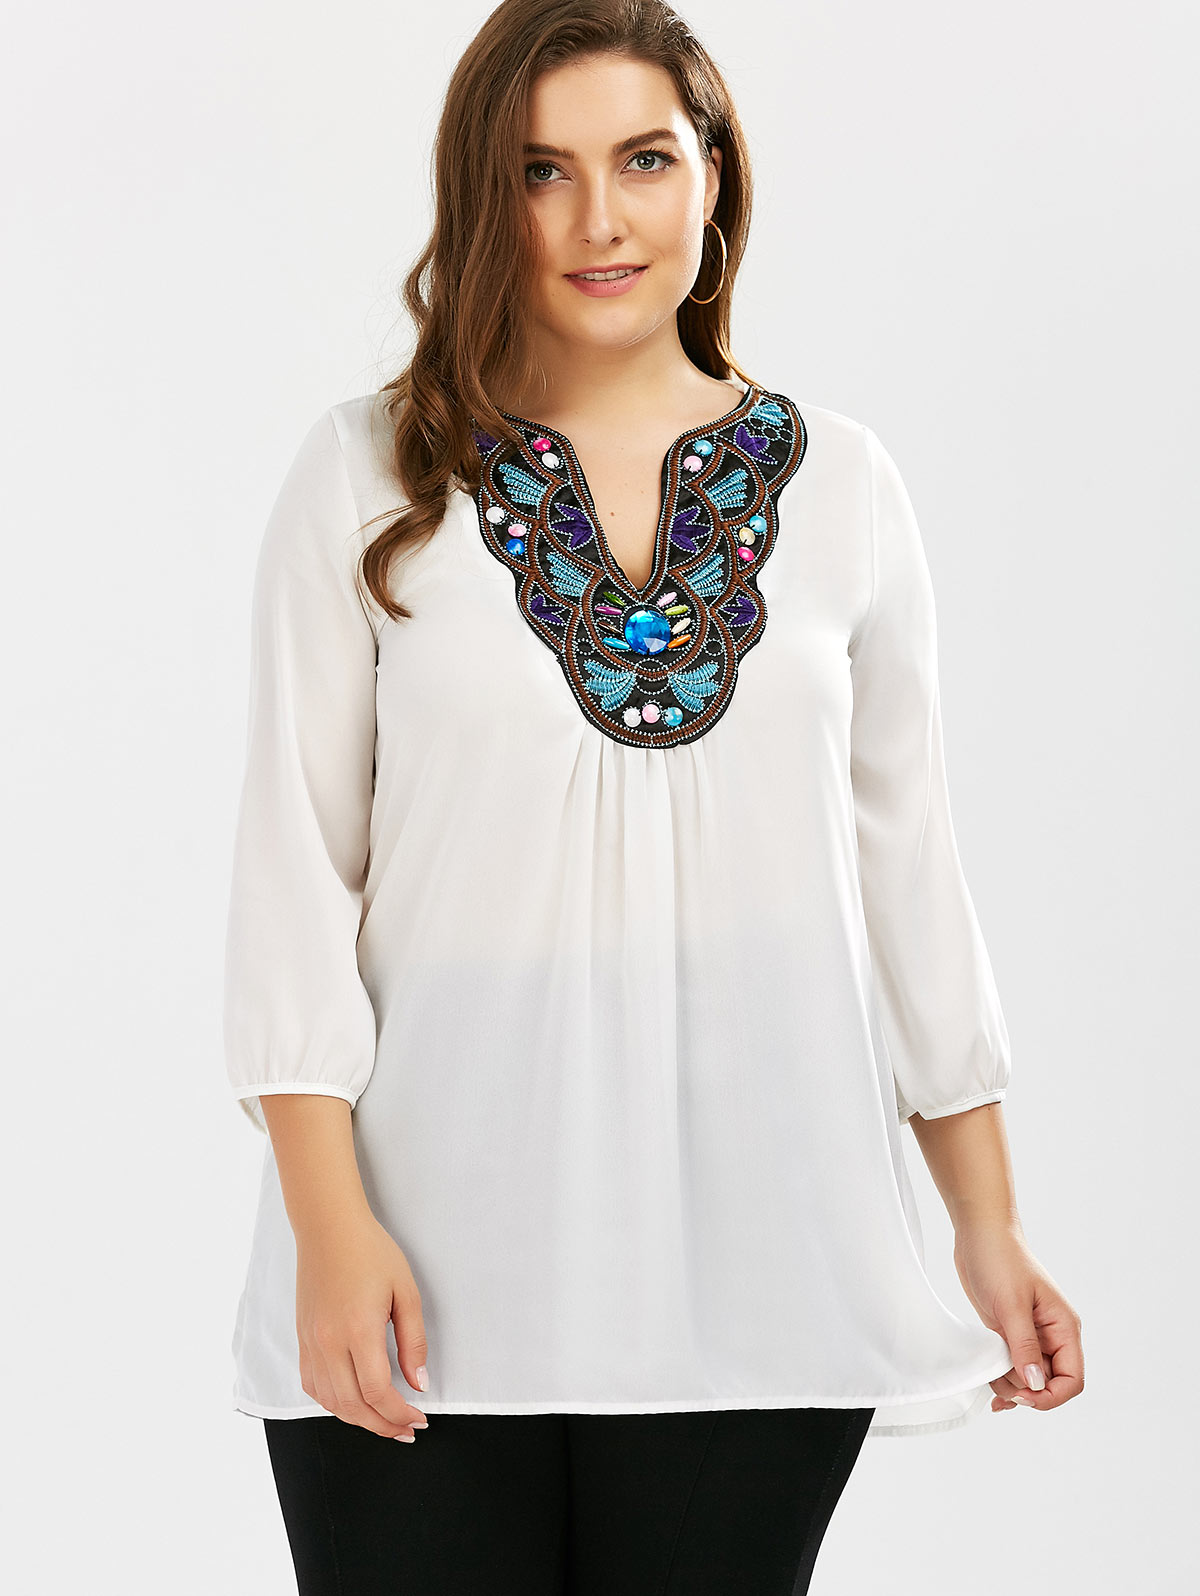 ea8bc0c7a15 ZAFUL Plus Size Embroidered Rhinestone Tunic Blouse White Color Chiffon  Summer Women Blouse Summer Feminino Blusas Casual Shirts